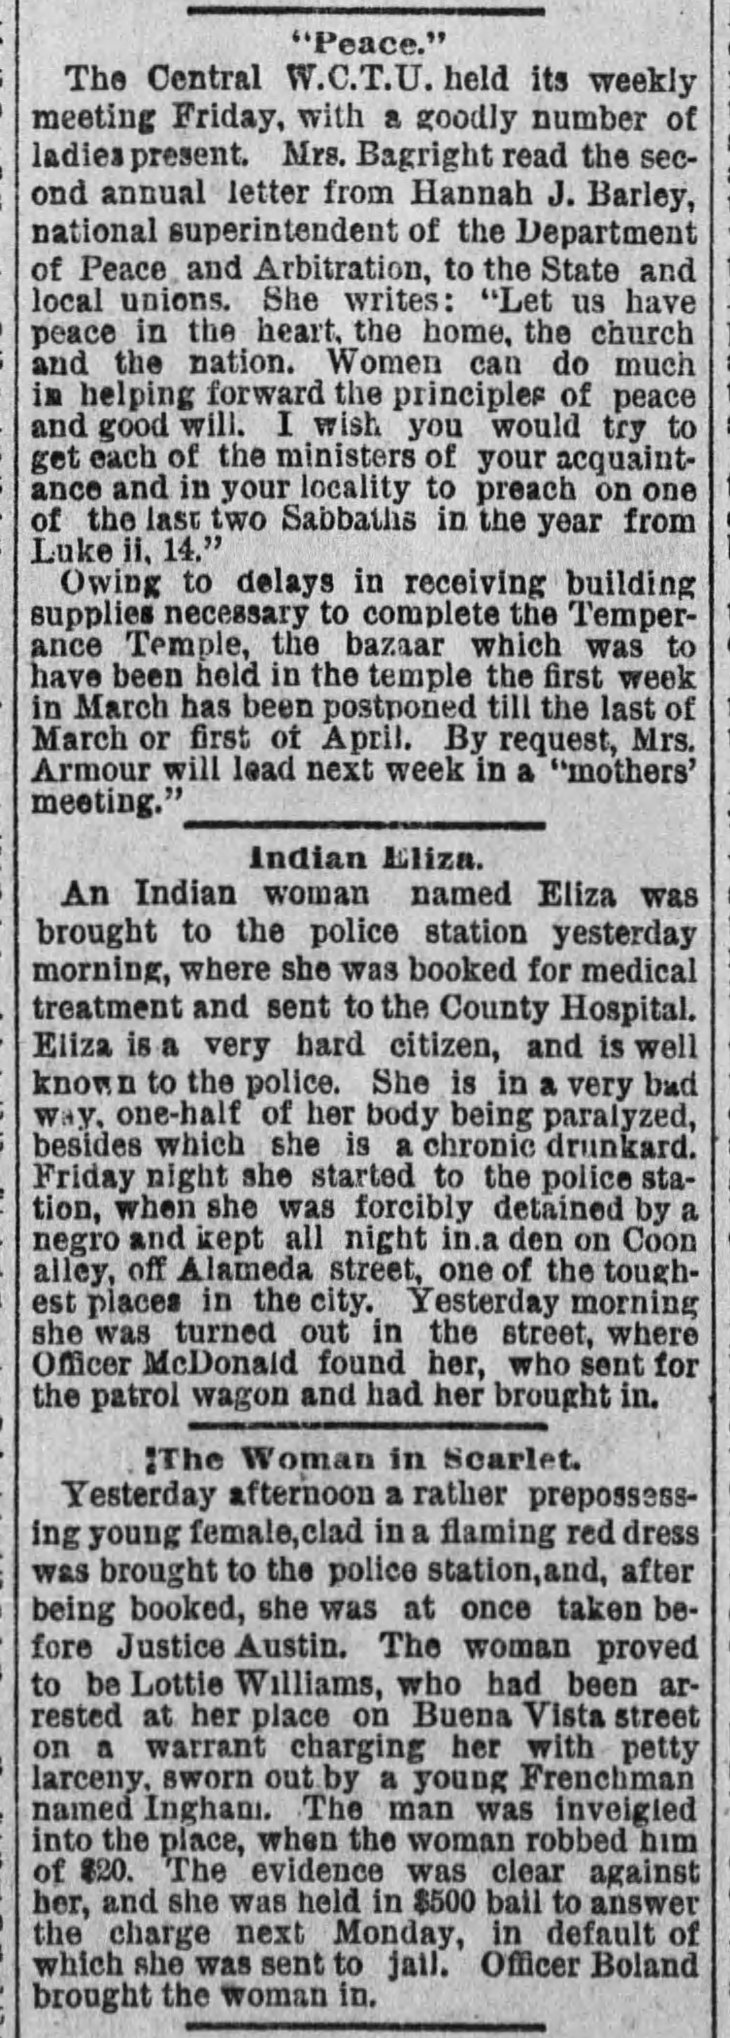 Temple Indian woman Woman in Scarlet The_Los_Angeles_Times_Sun__Feb_24__1889_.jpg